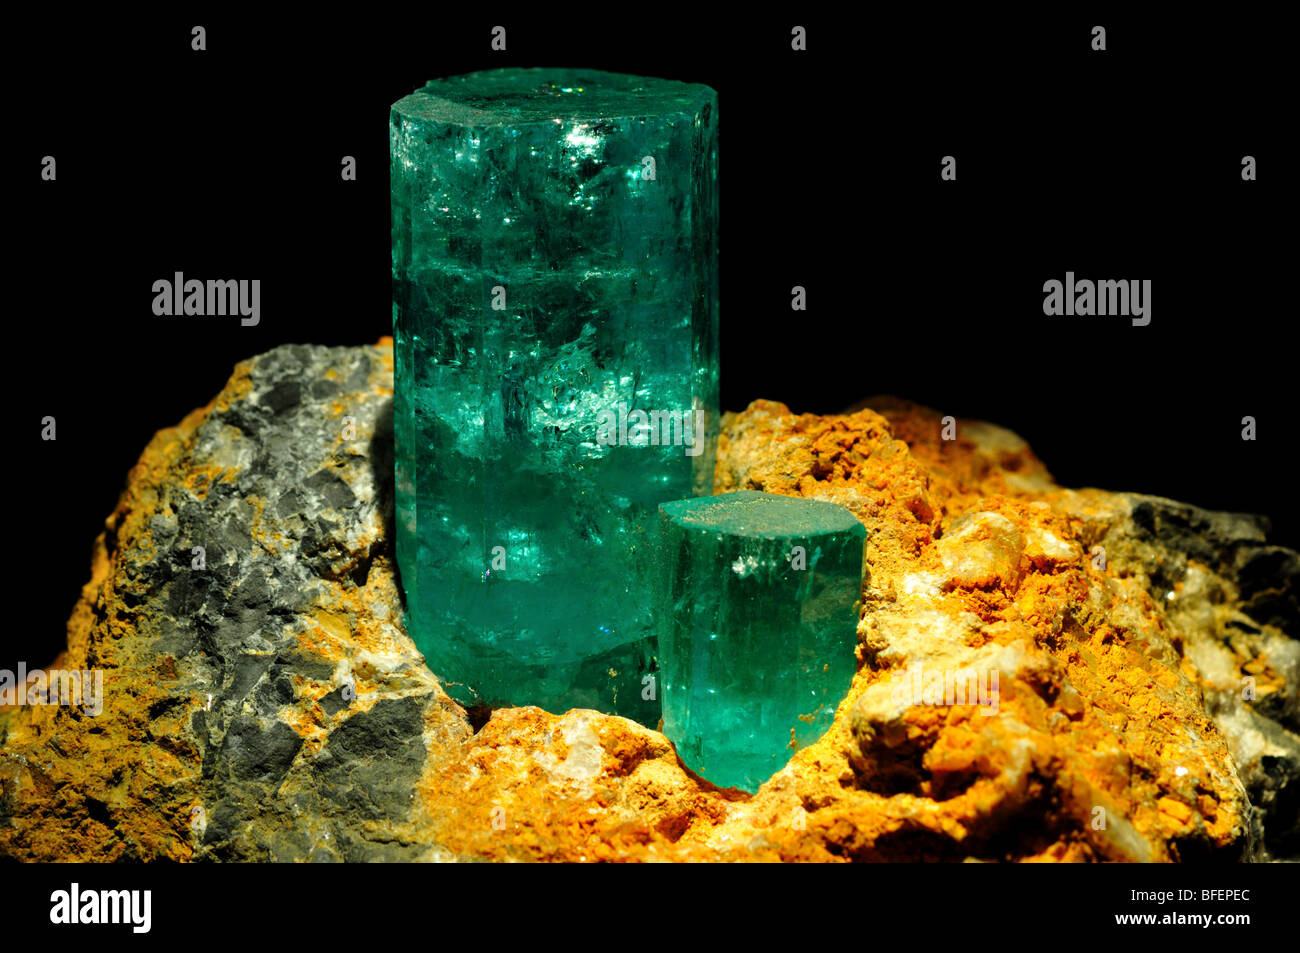 Crystals of mineral emerald, a variety of beryl. - Stock Image